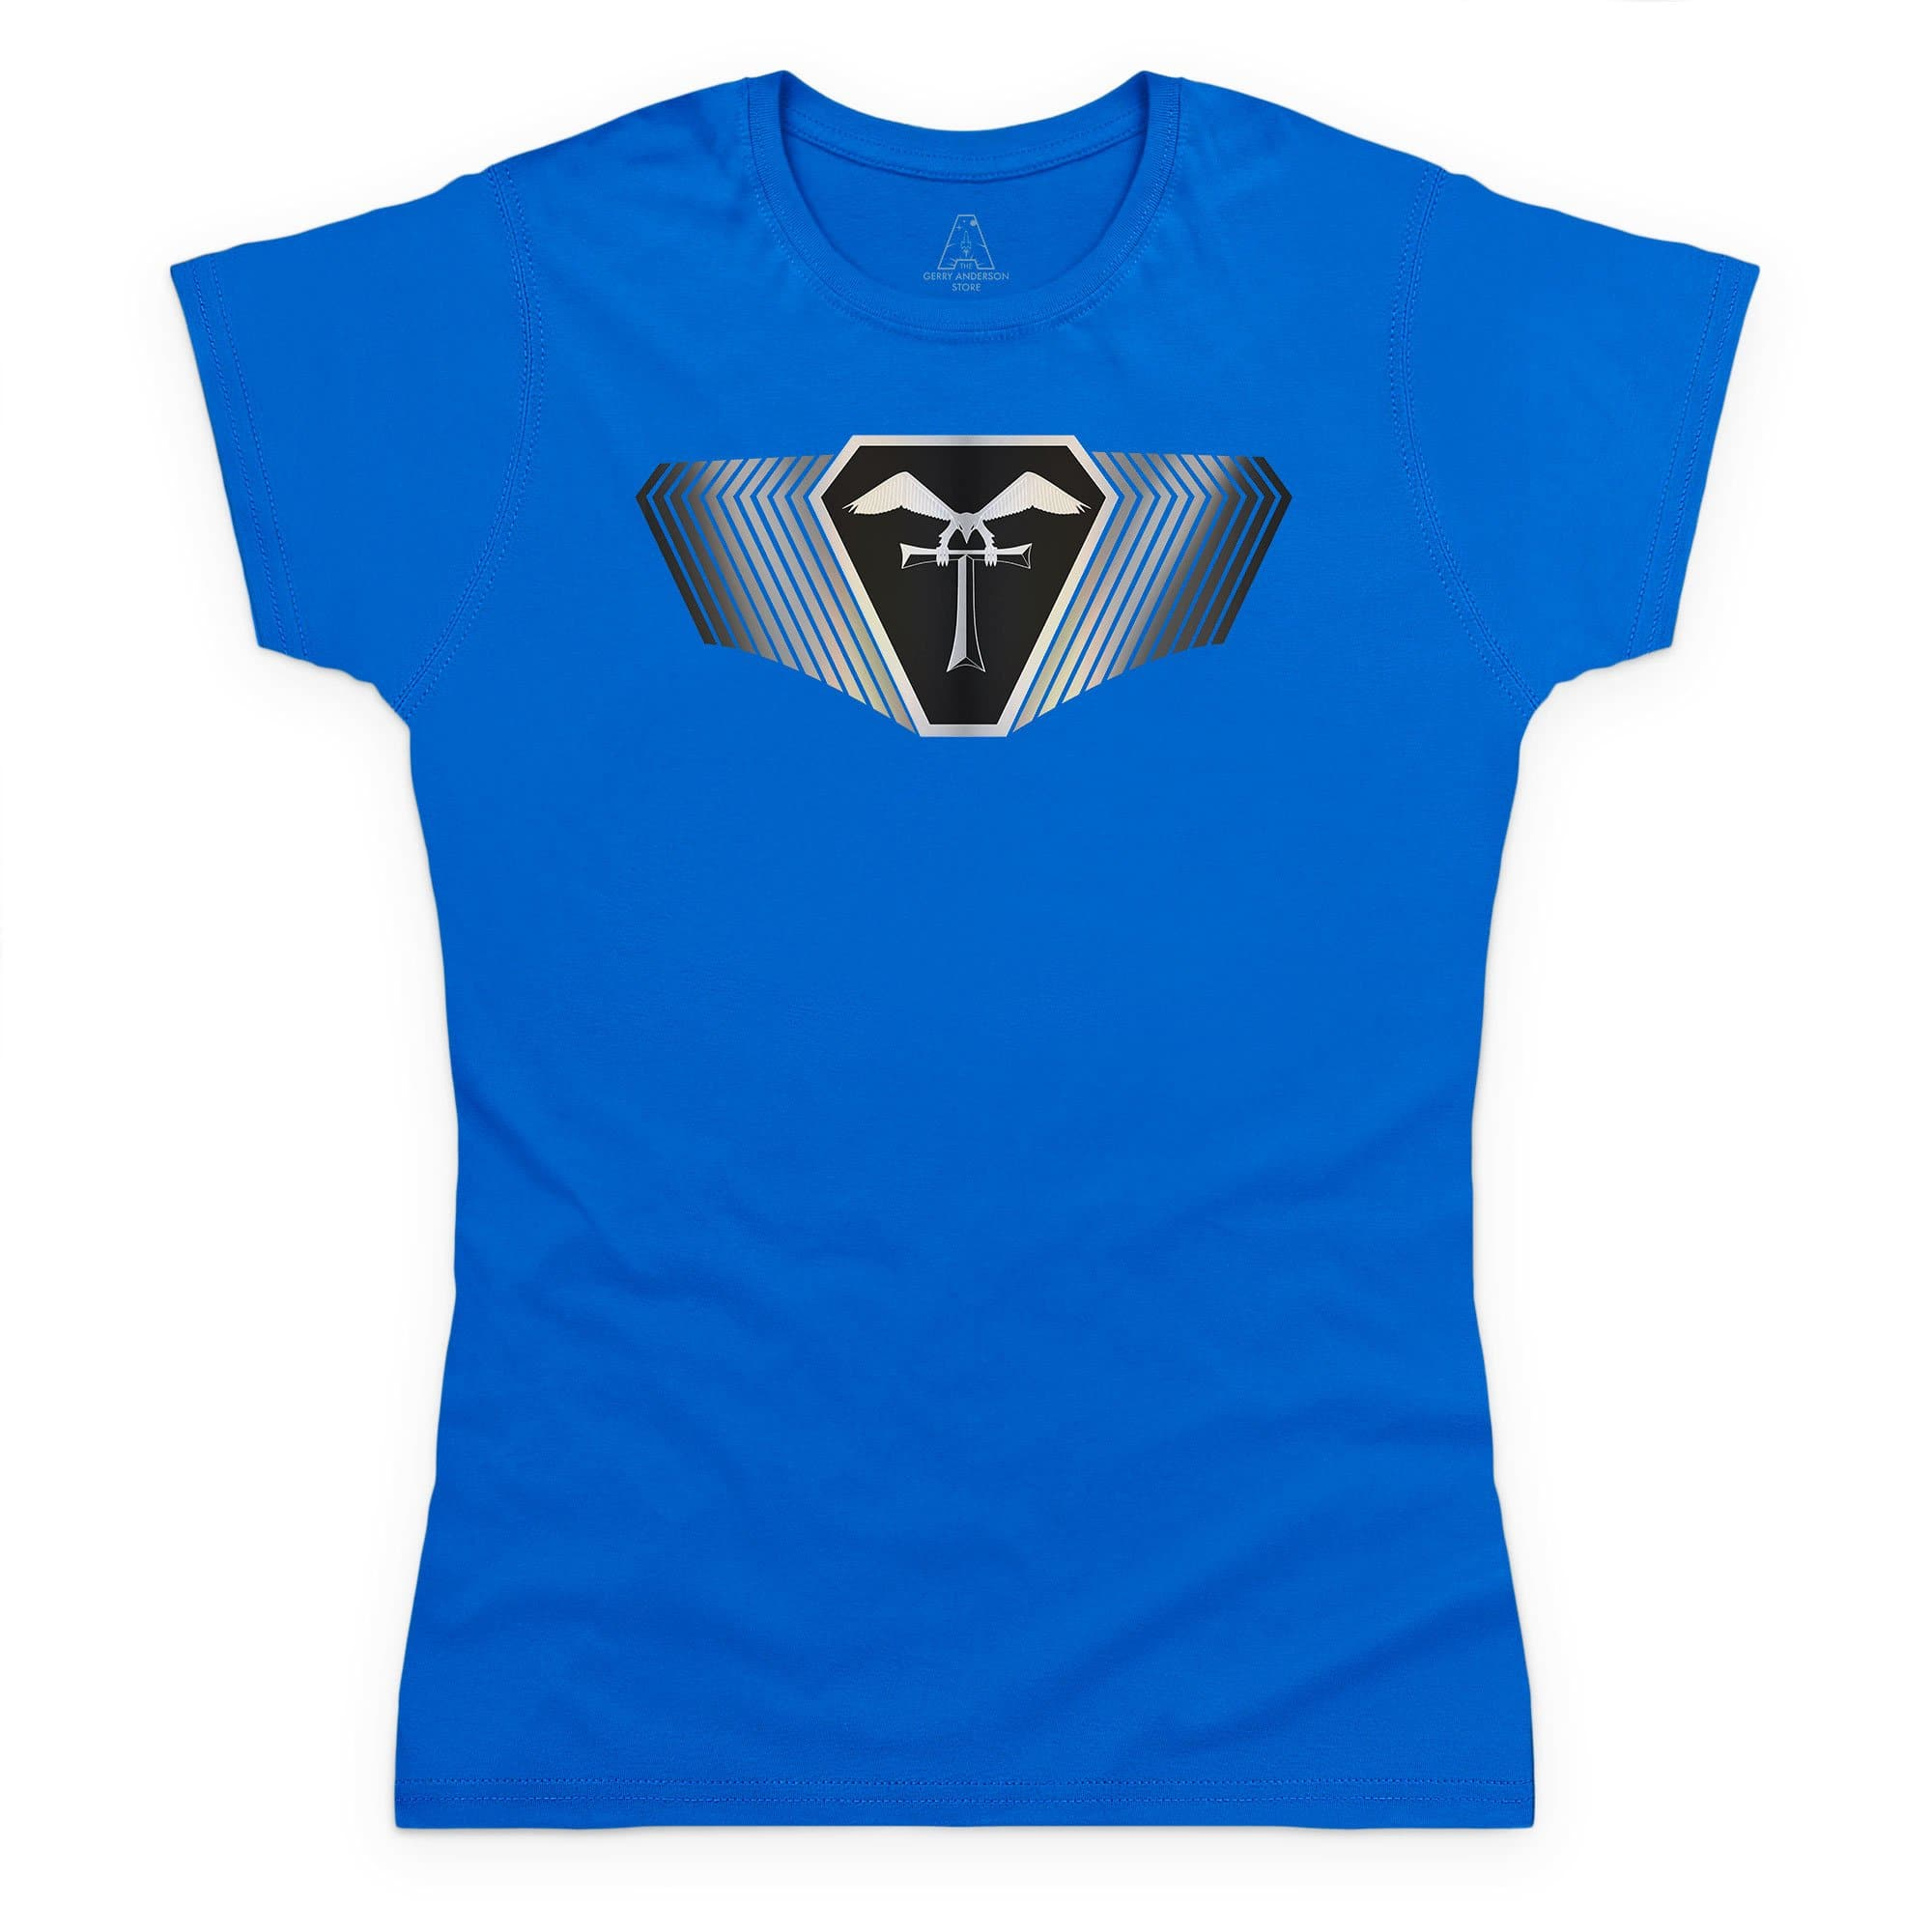 Terrahawks Silver Emblem Women's T-Shirt [Official & Exclusive]